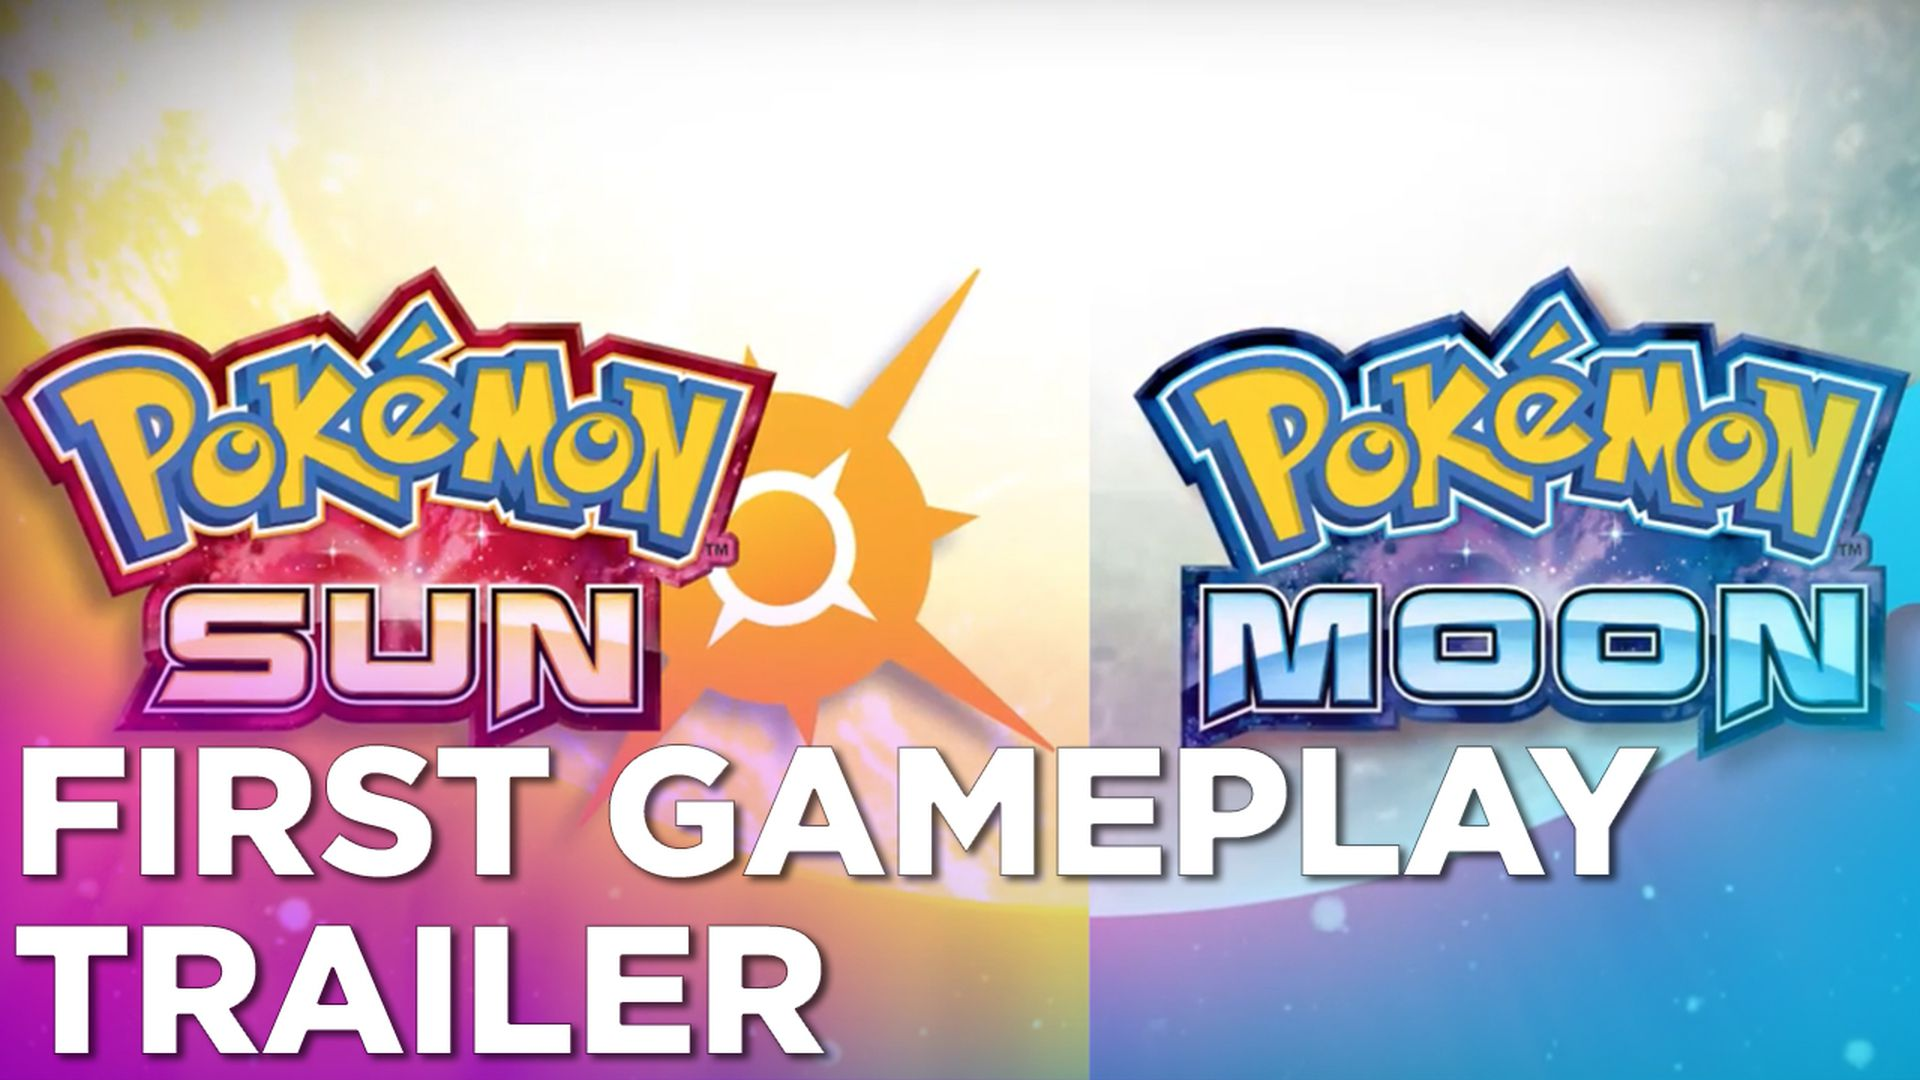 Meet Pokémon Sun and Moon's starters in new trailer before November's launch (update)